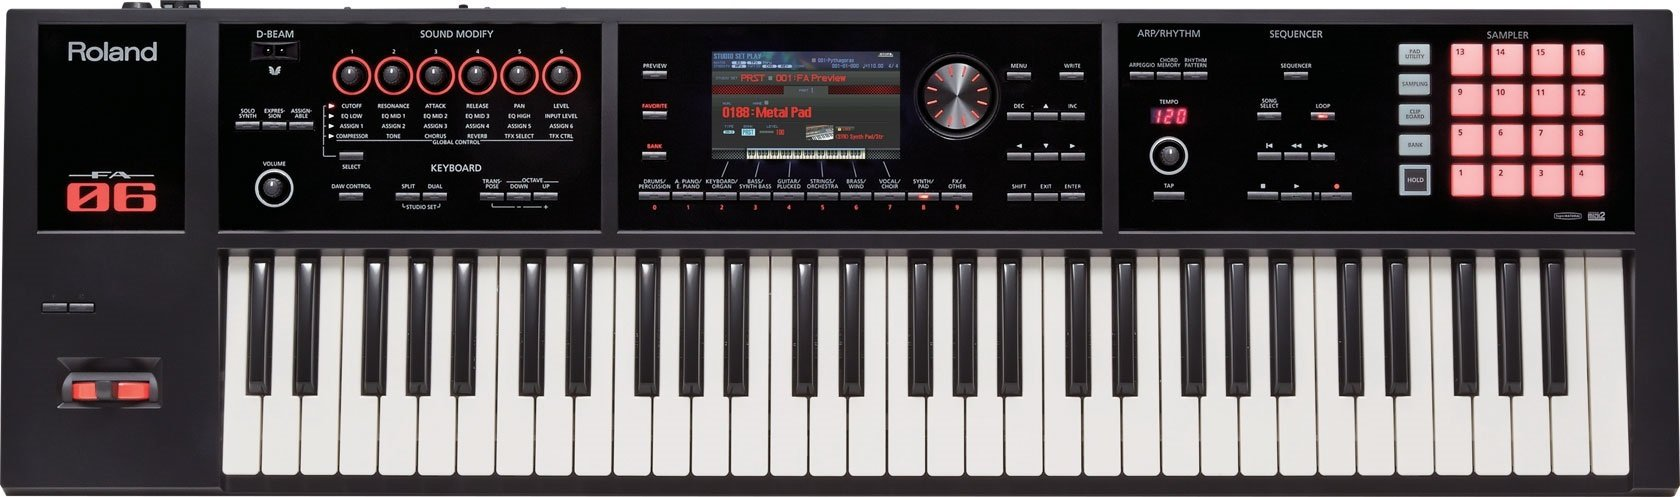 Roland 61-key Music Workstation (FA-06)